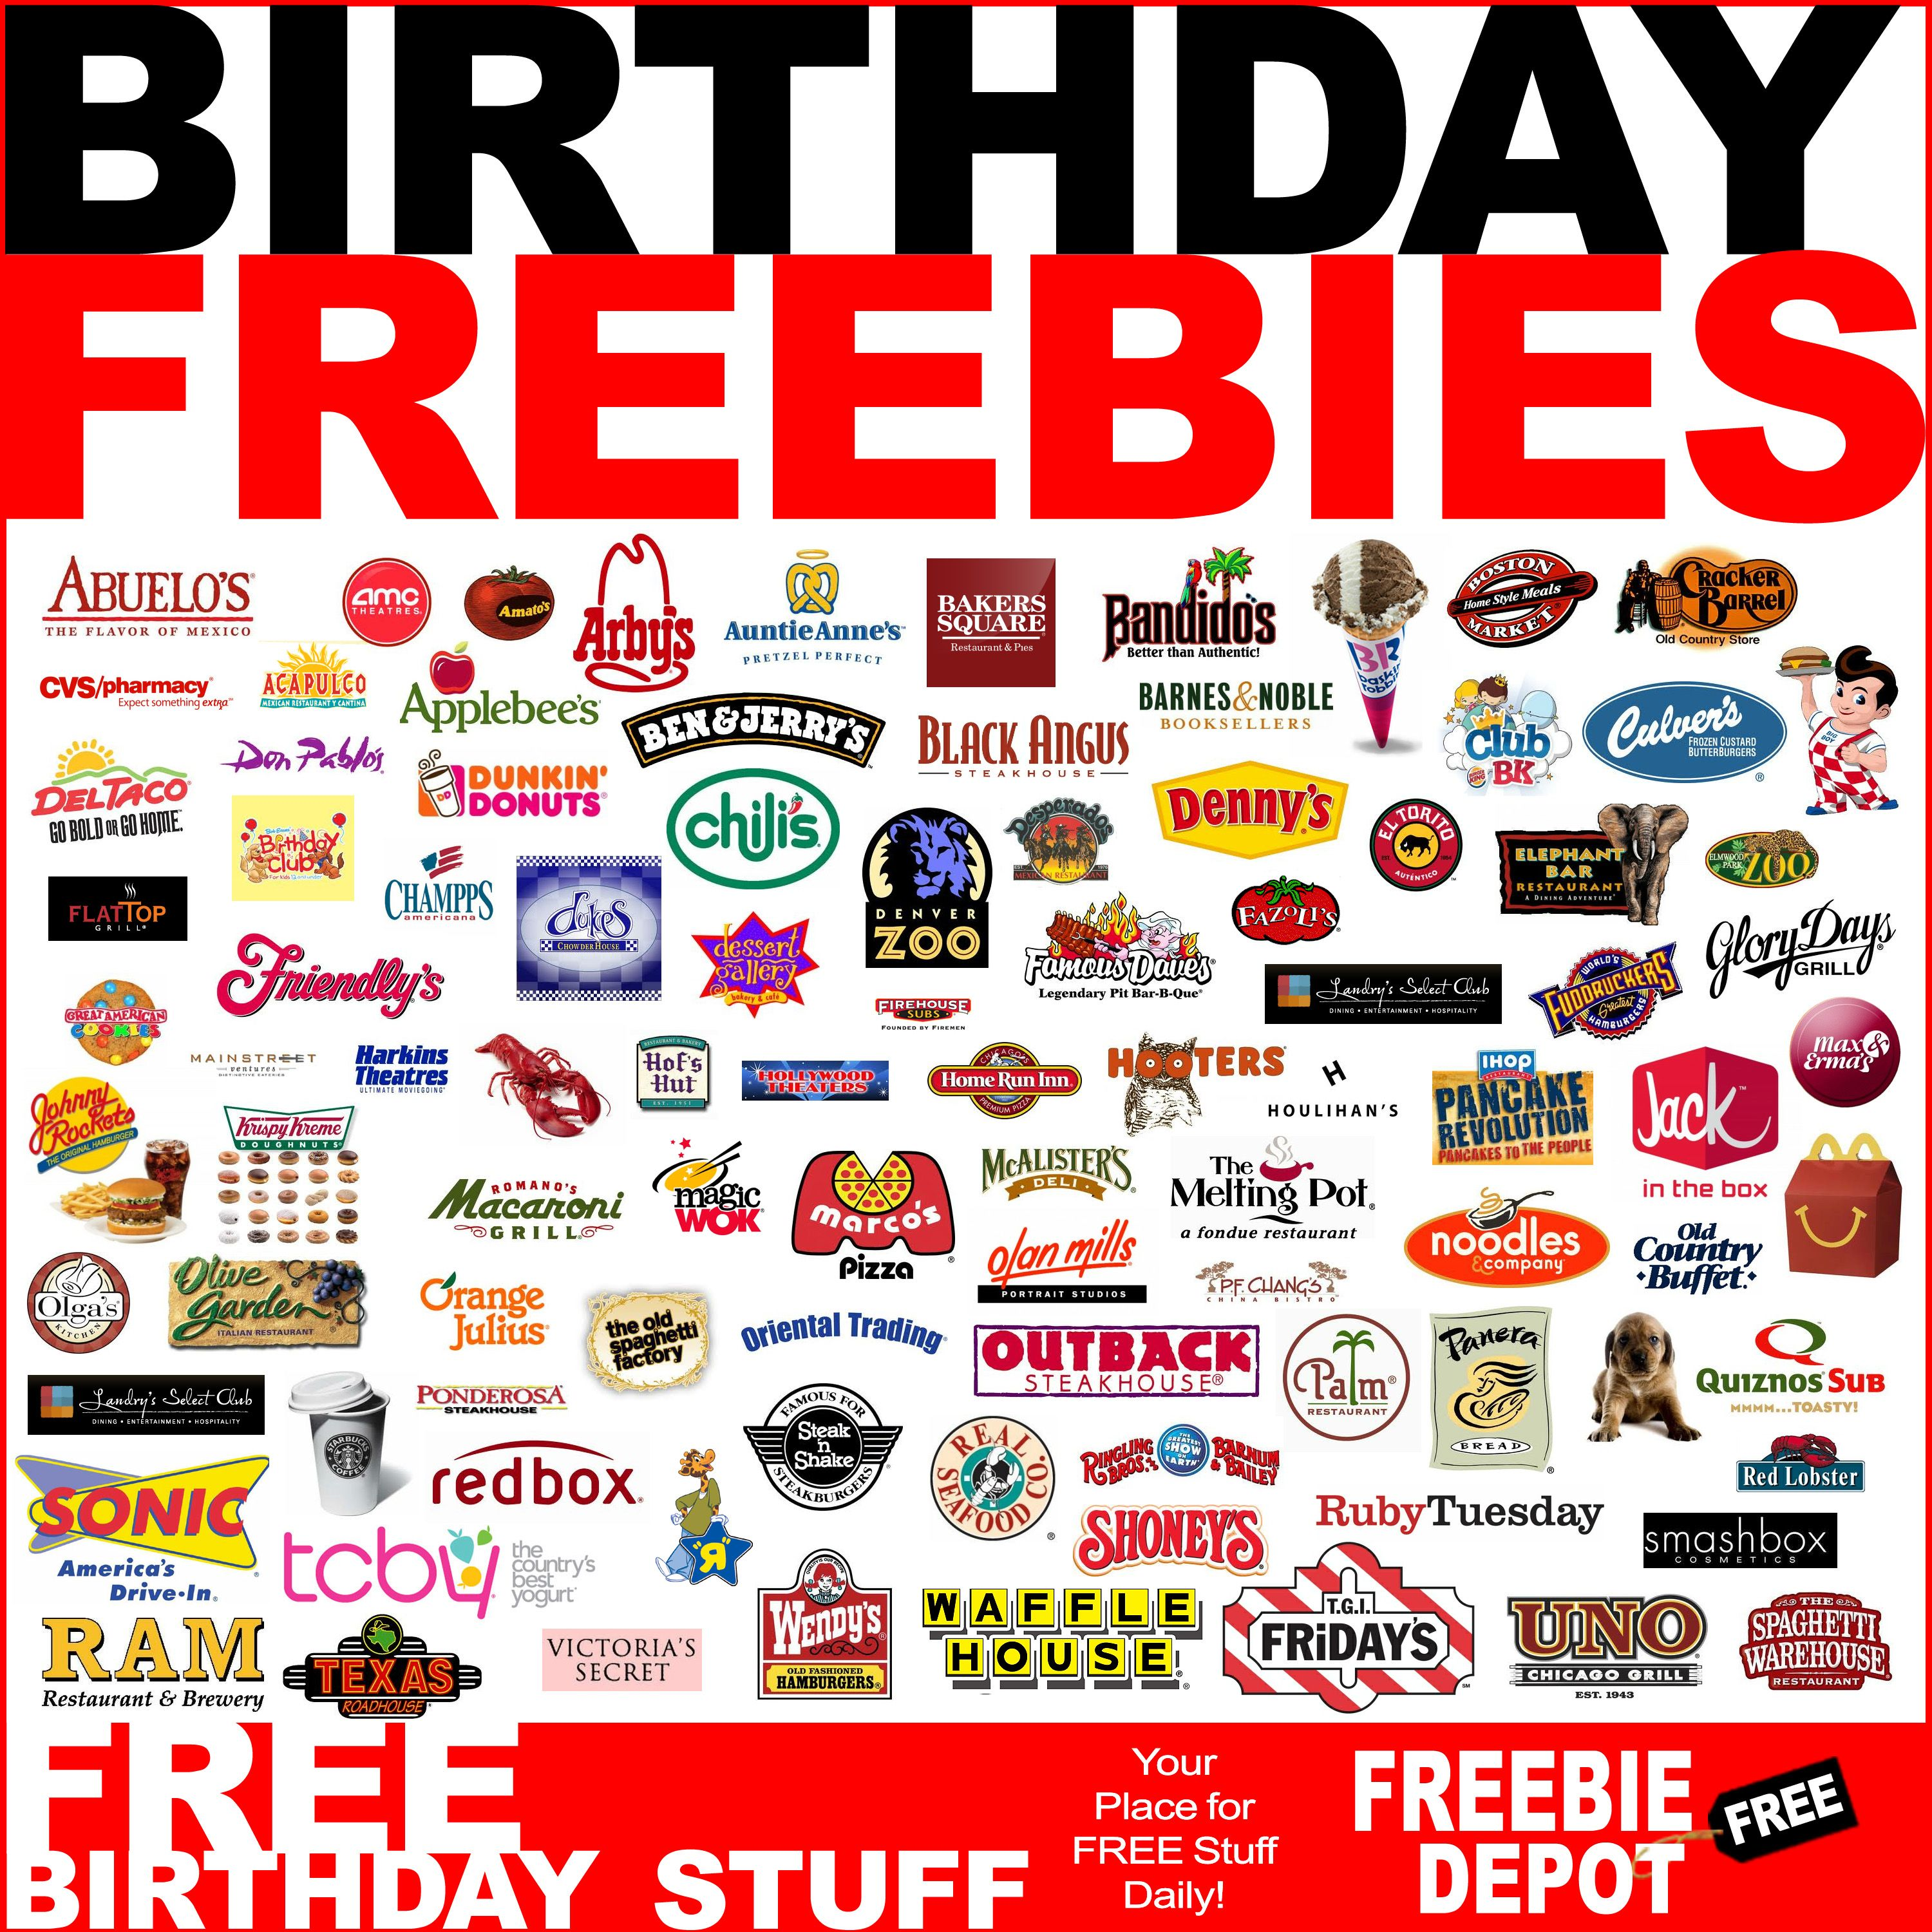 email sign up for free birthday stuff ; ccade6c553437e1edf4414e524690c64